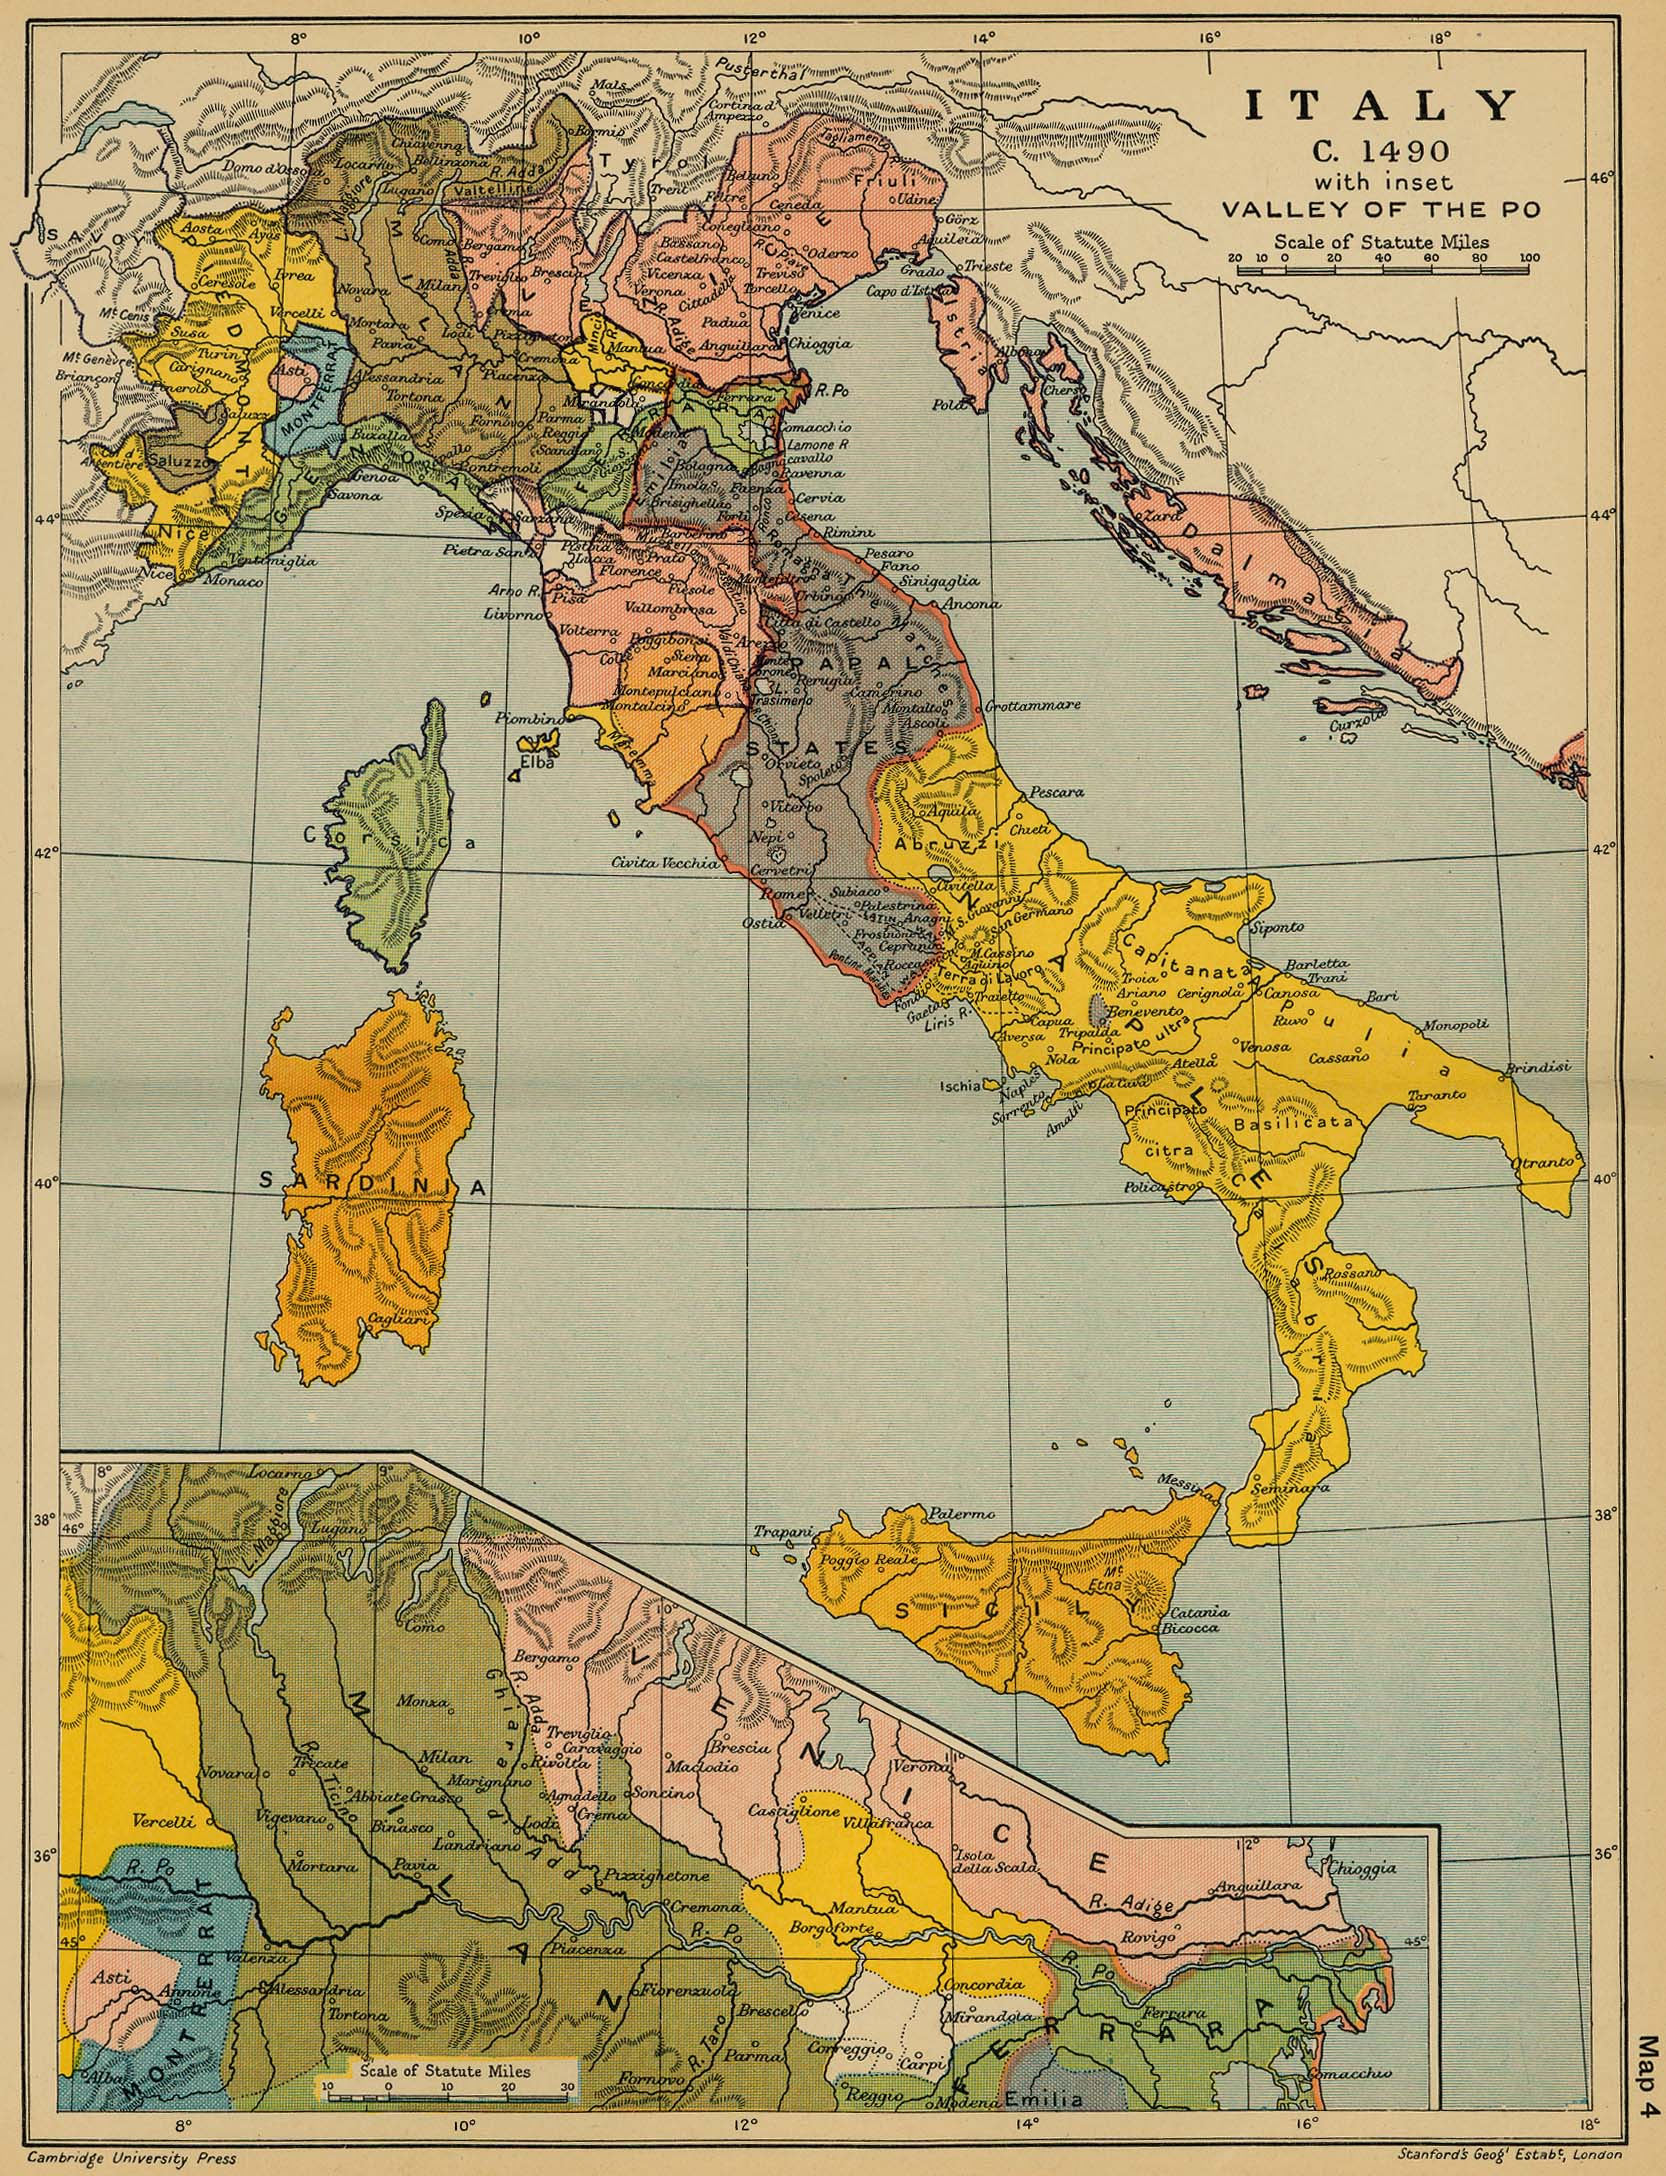 Cambridge modern history atlas 1912 perry castaeda map collection map 3 italy c gumiabroncs Choice Image